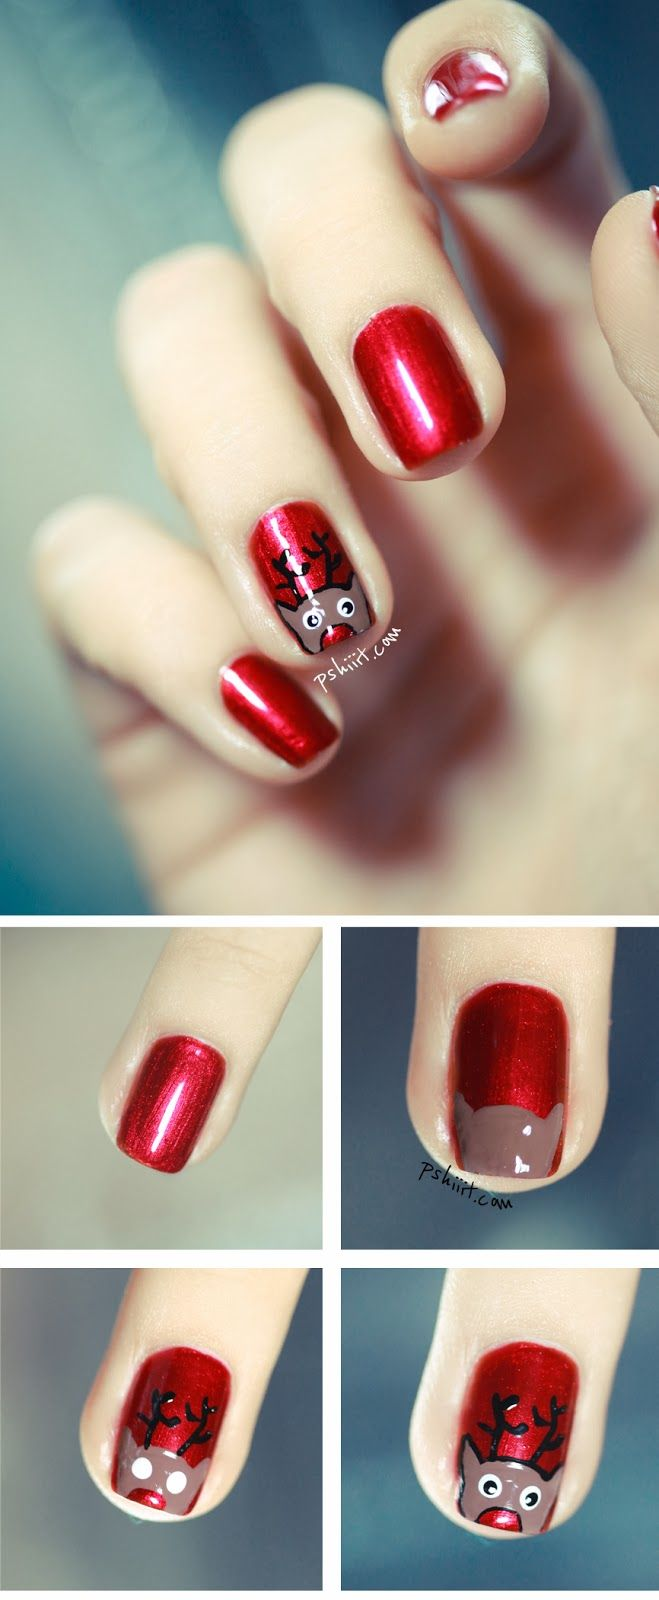 20+ Cutest Christmas Nail Art DIY Ideas | www.FabArtDIY.com